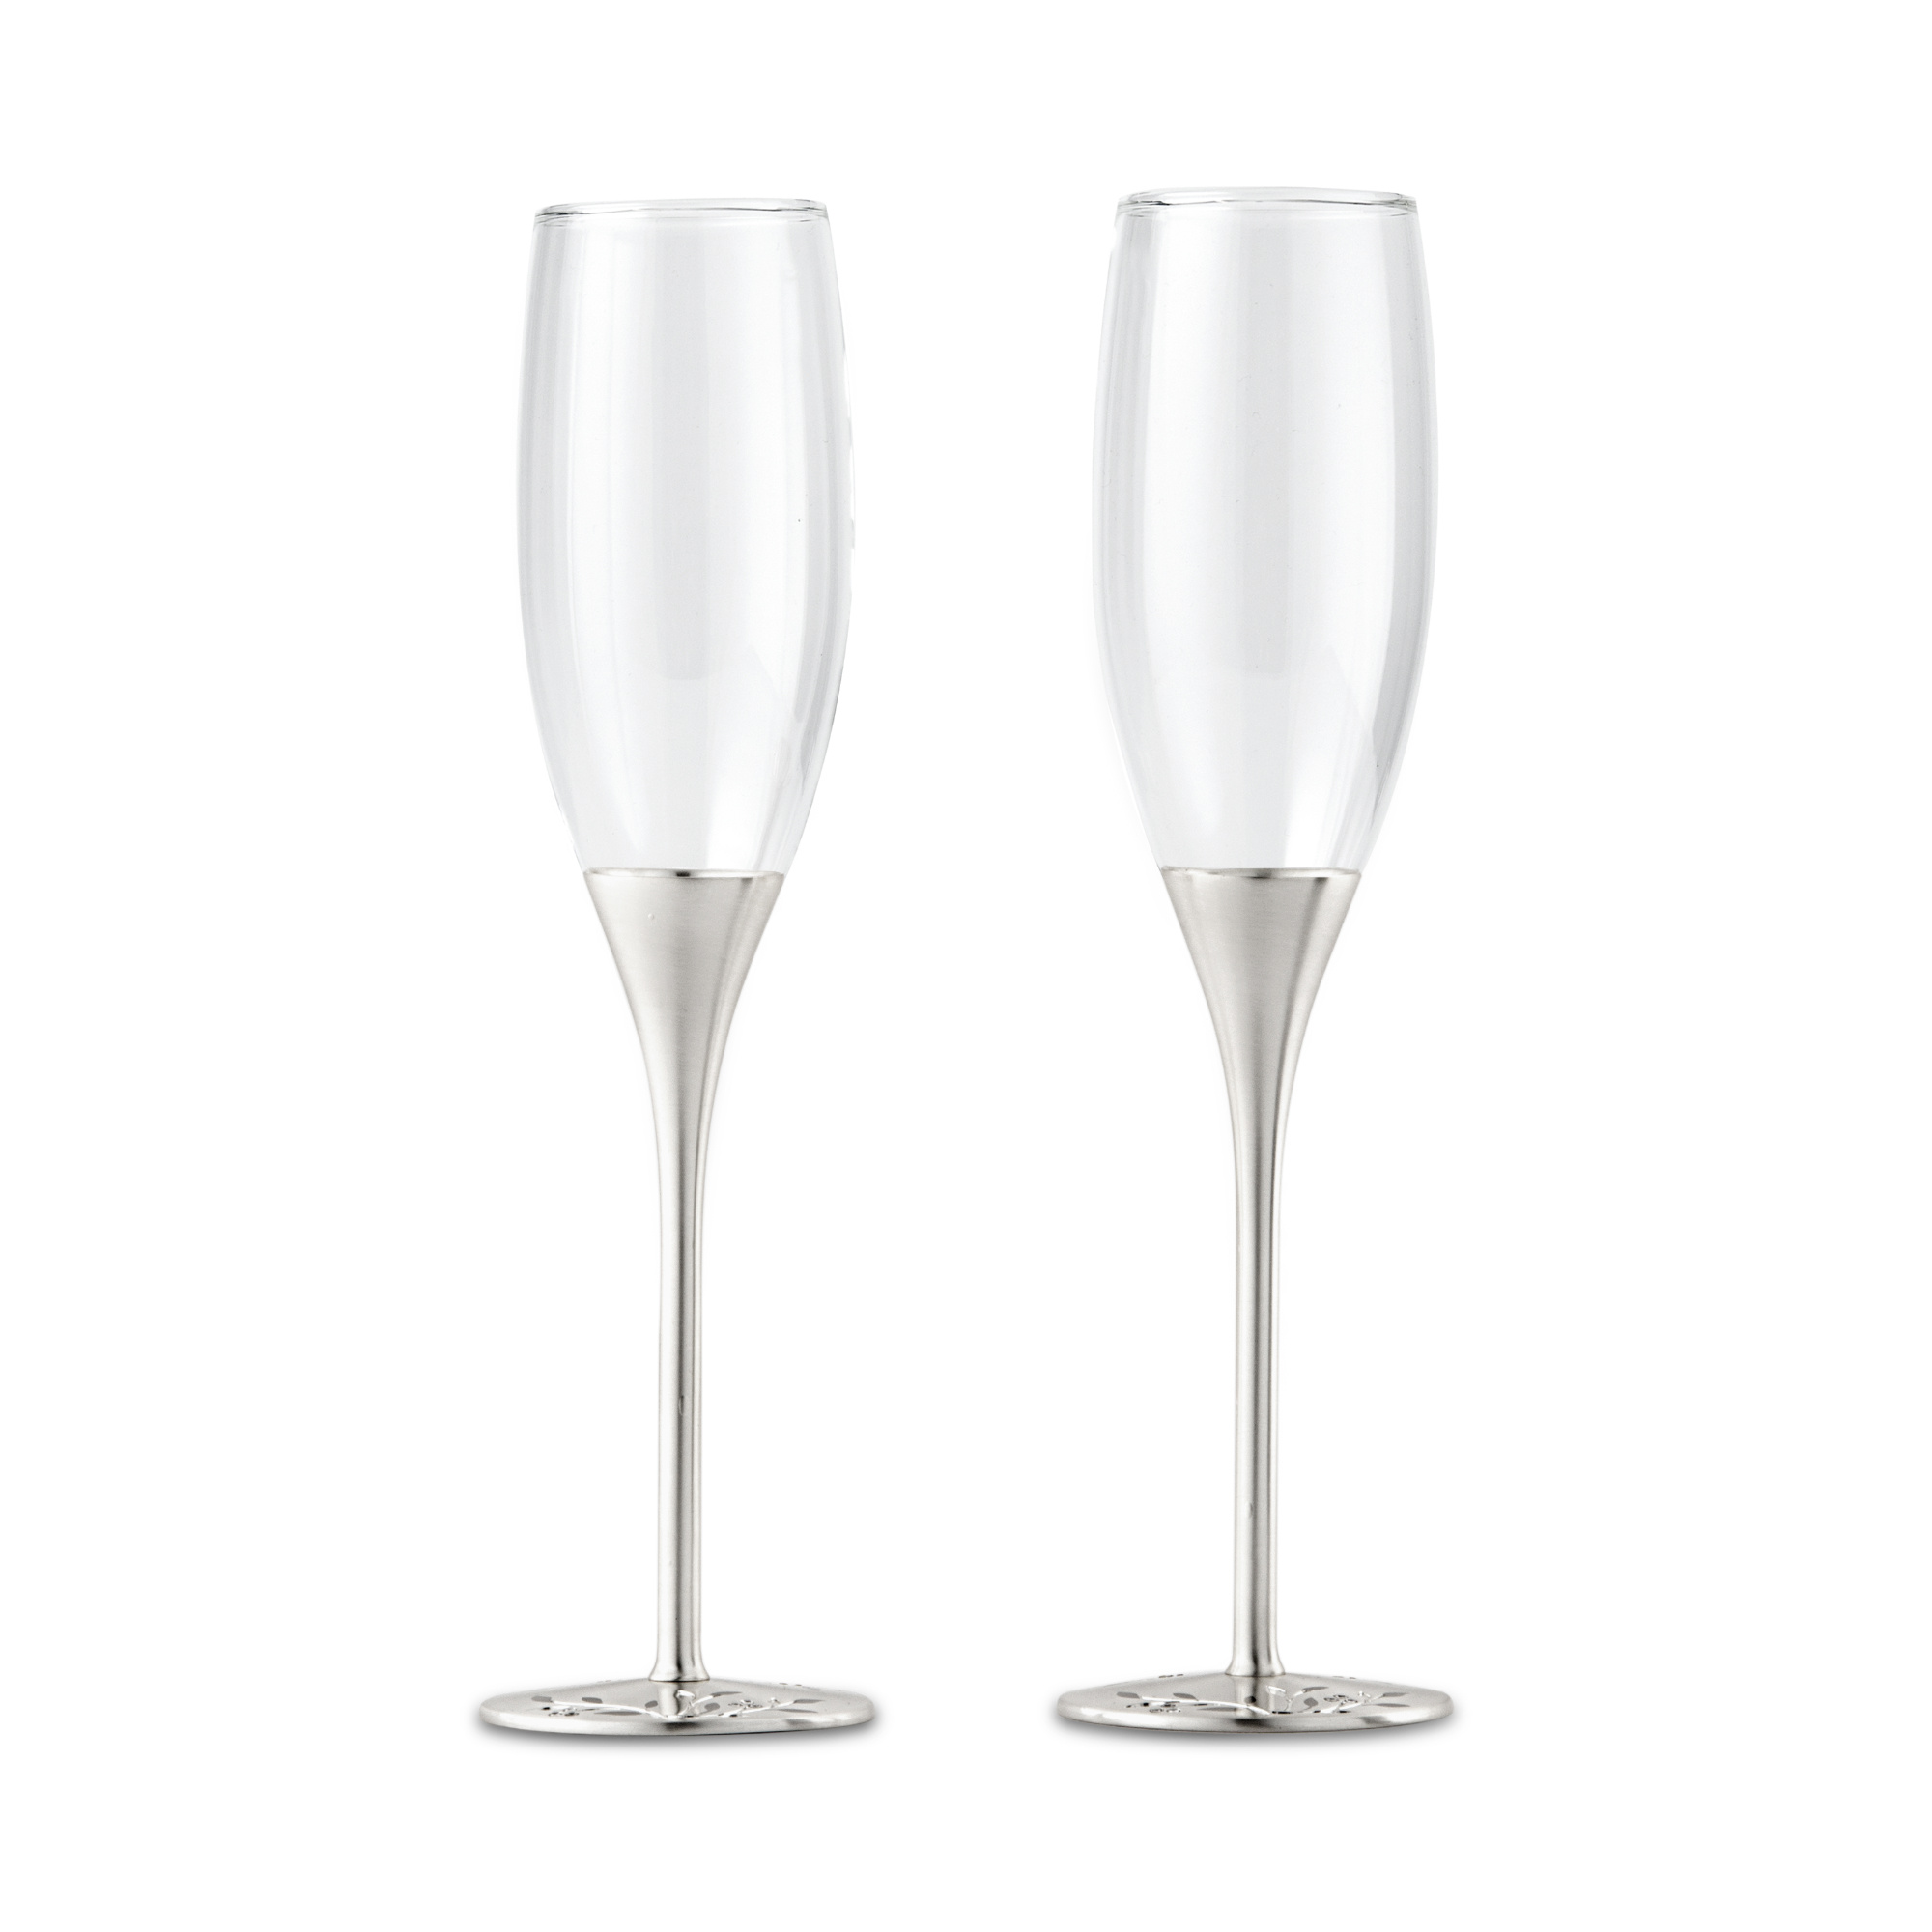 94bfb77b334 Image is loading Champagne-Glasses-with-Stone-Set-Base-Flutes-Silver